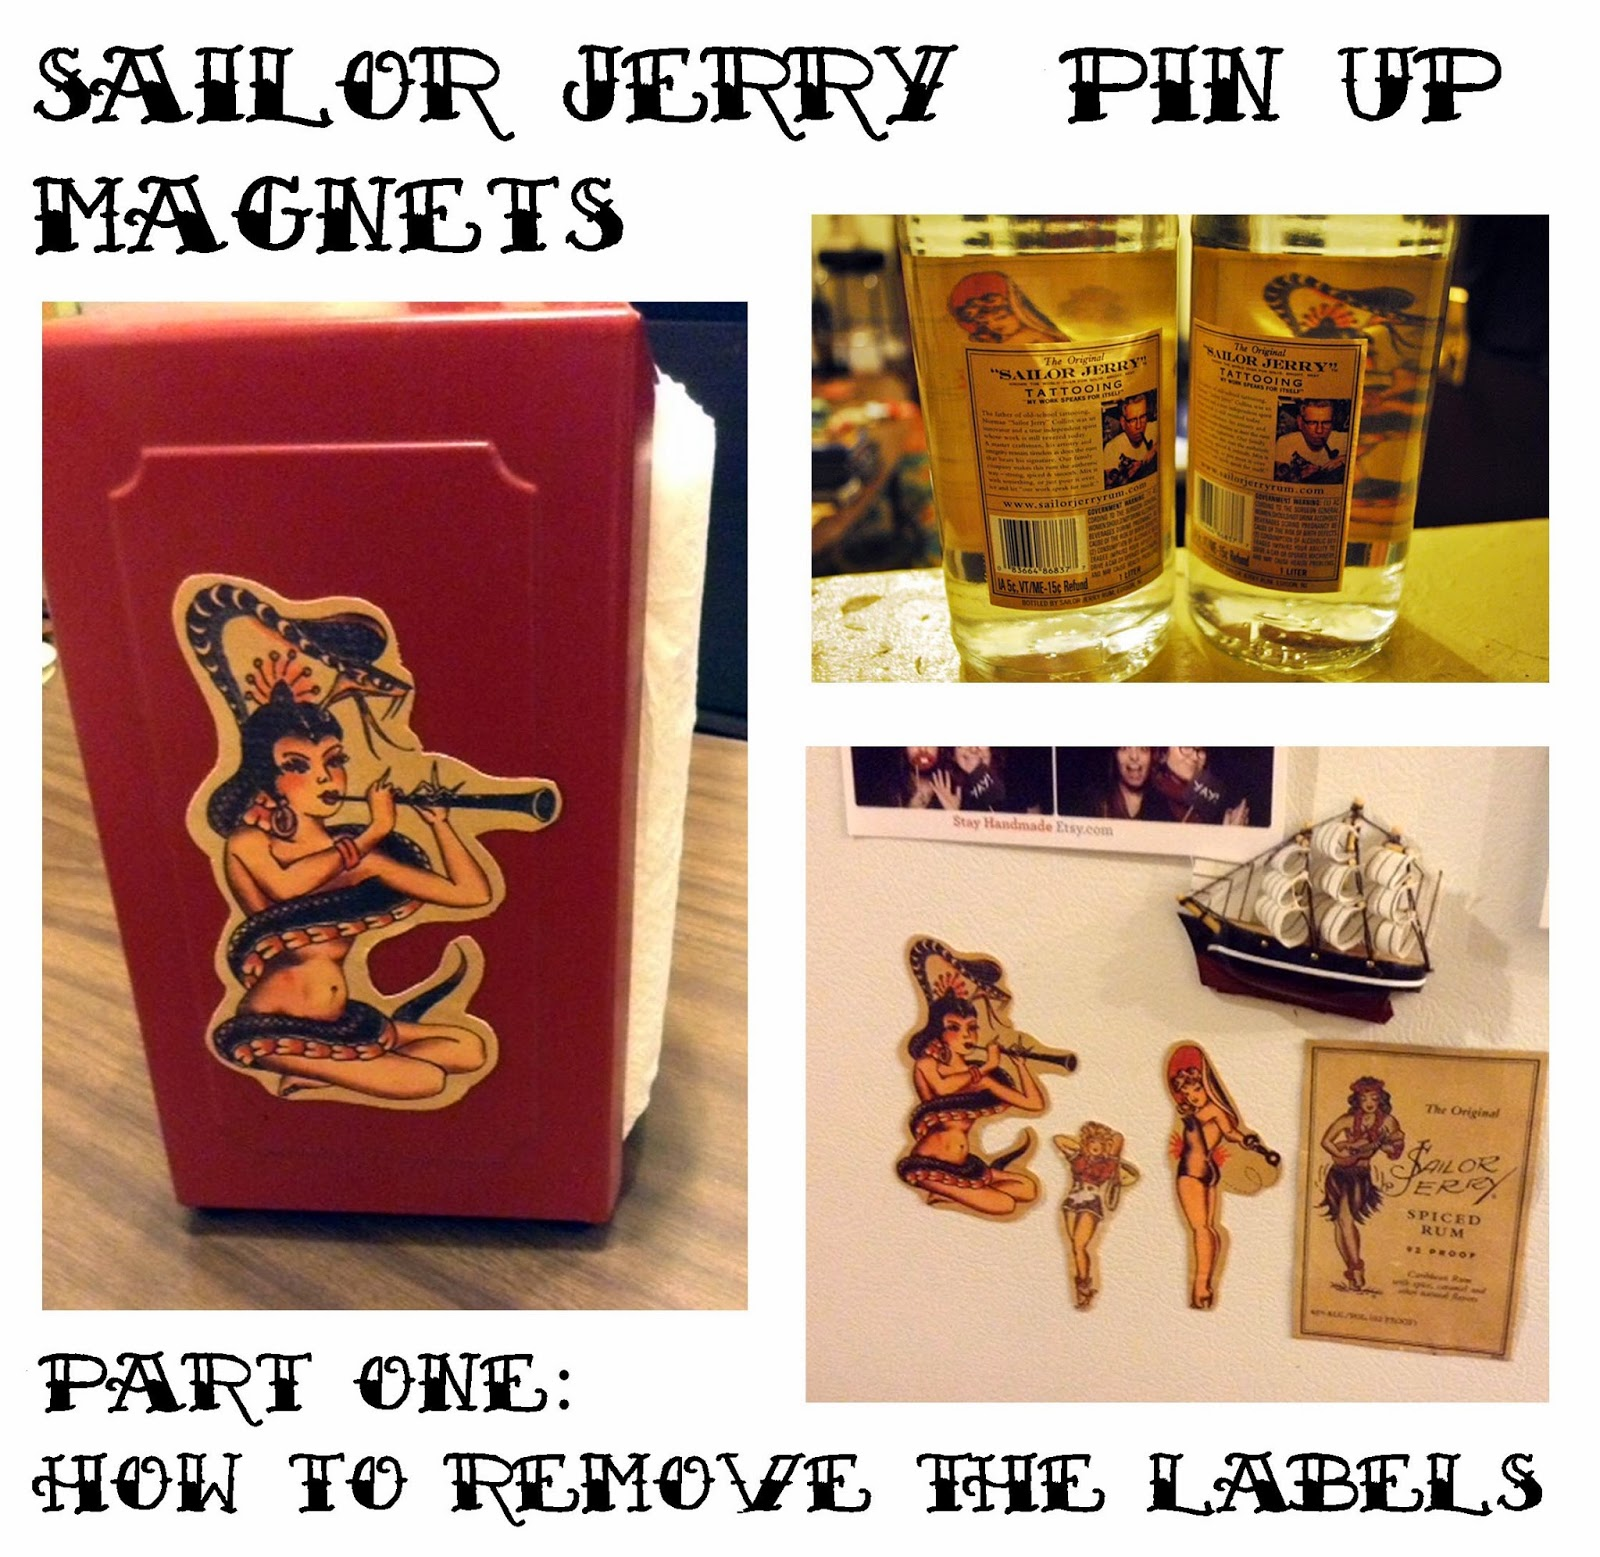 3cfc0087a We have been saving empty Sailor Jerry rum bottles for quite some time  because of the awesome pin up girl art in the back of the labels.